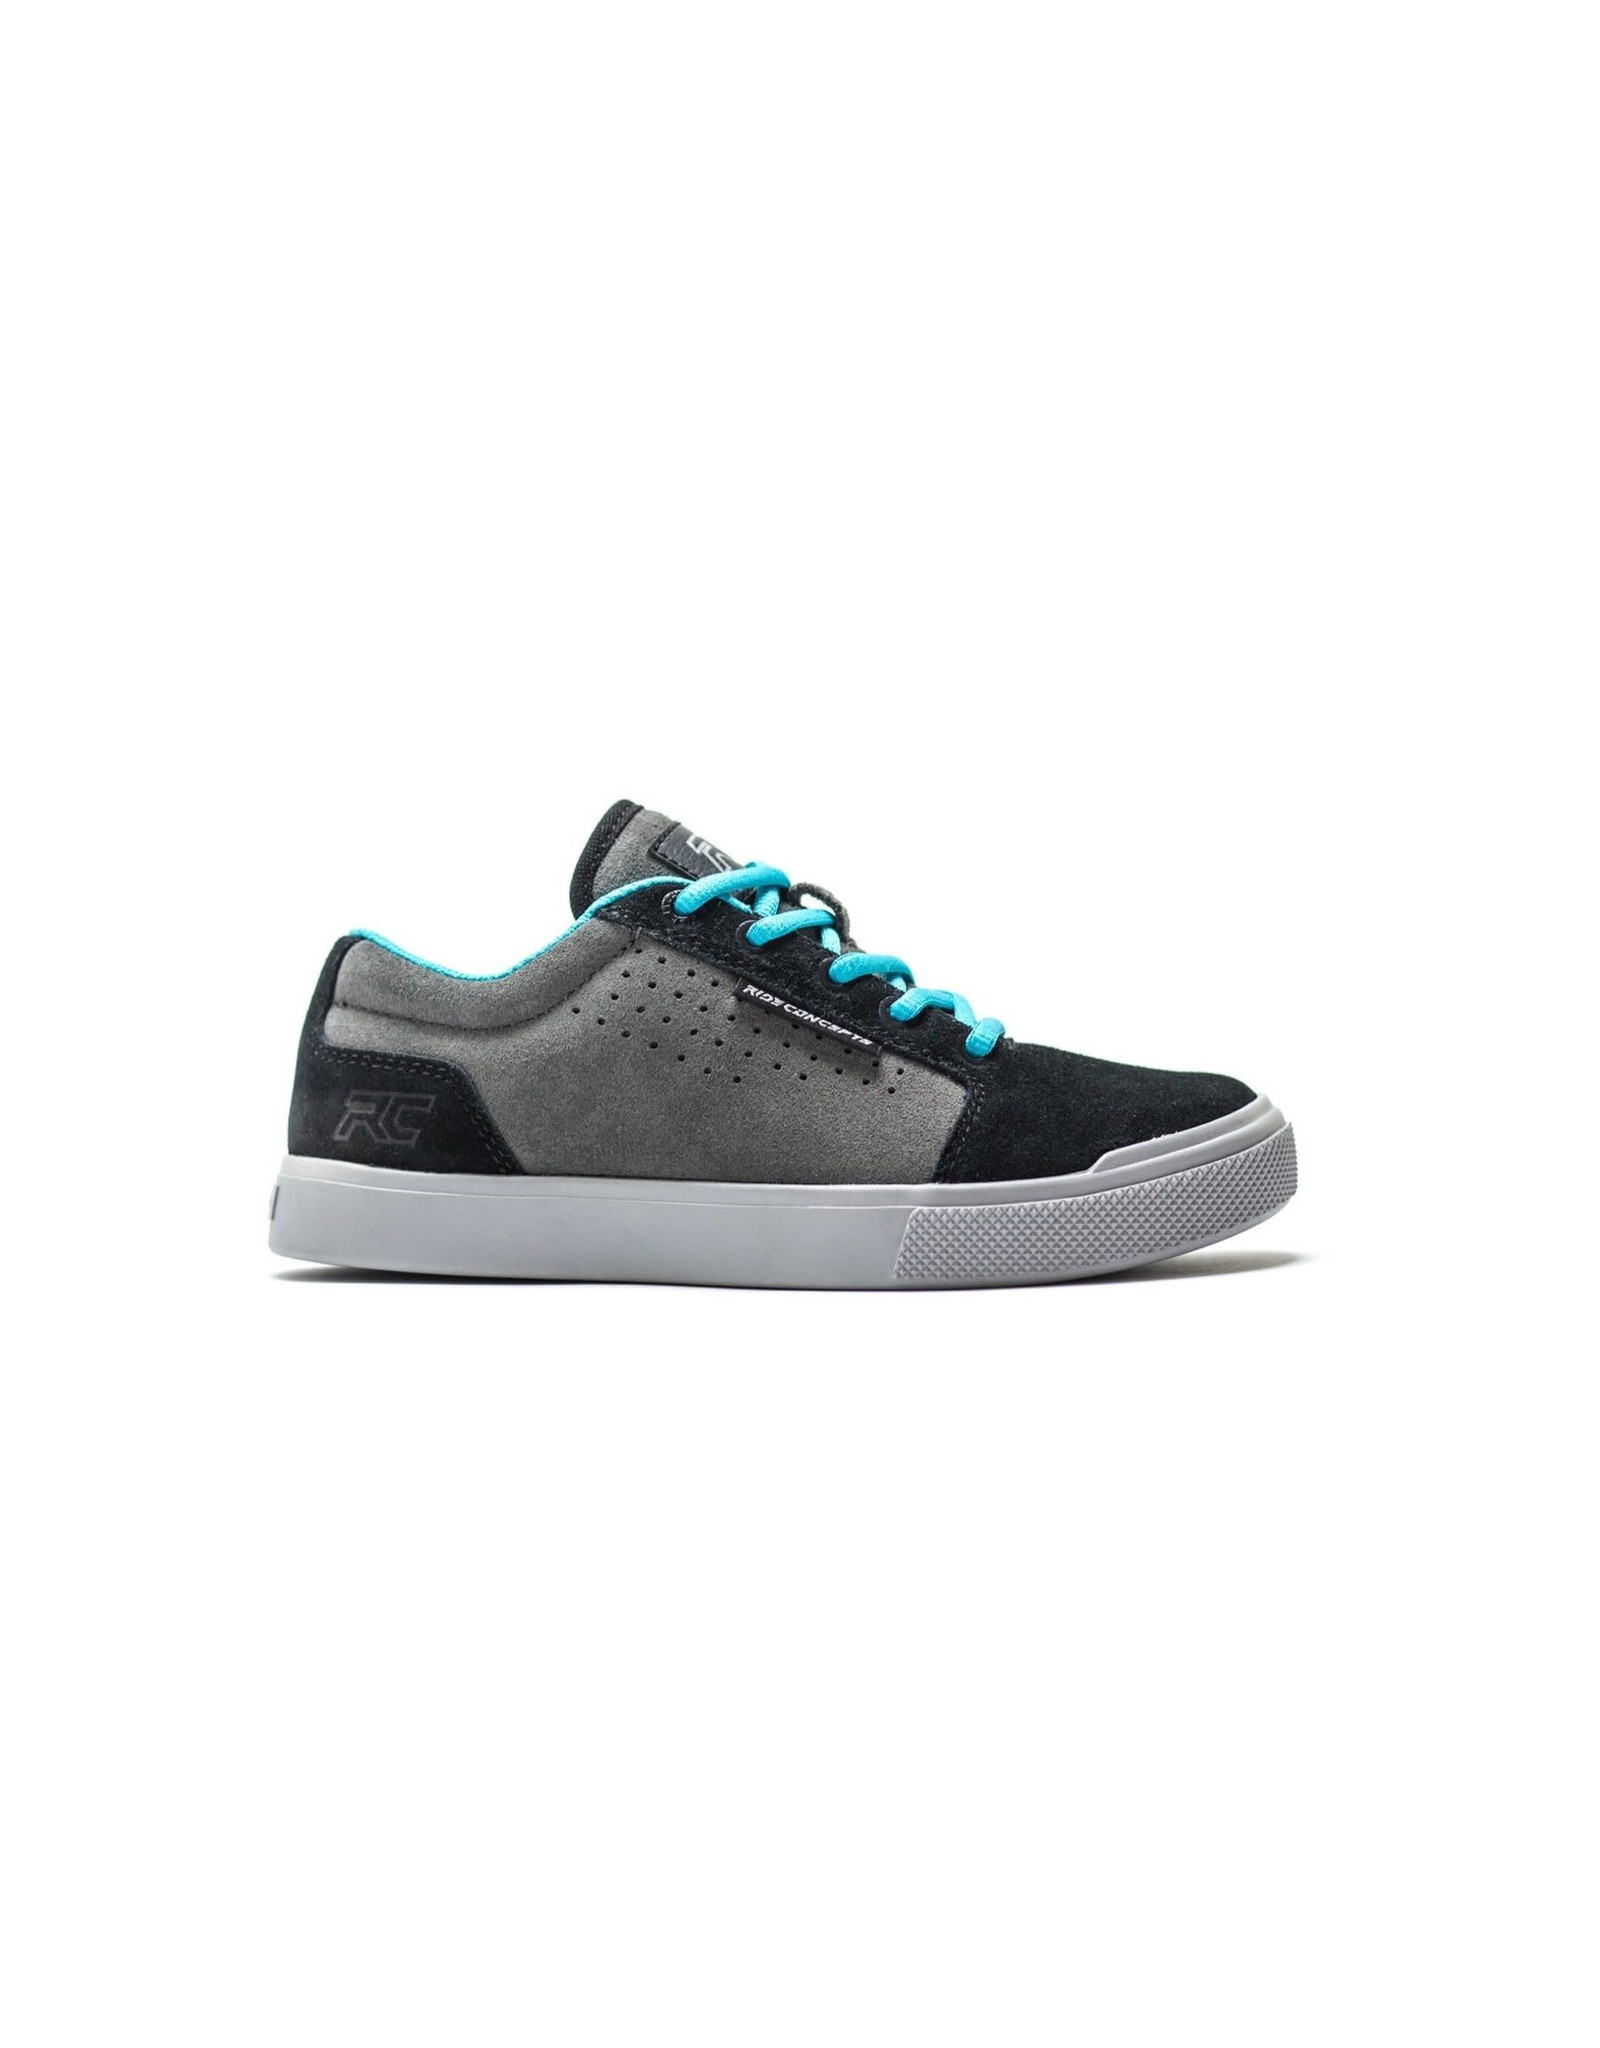 Ride Concept Ride Concept Vice Youth 37.0 / 5.0 Charcoal/Black